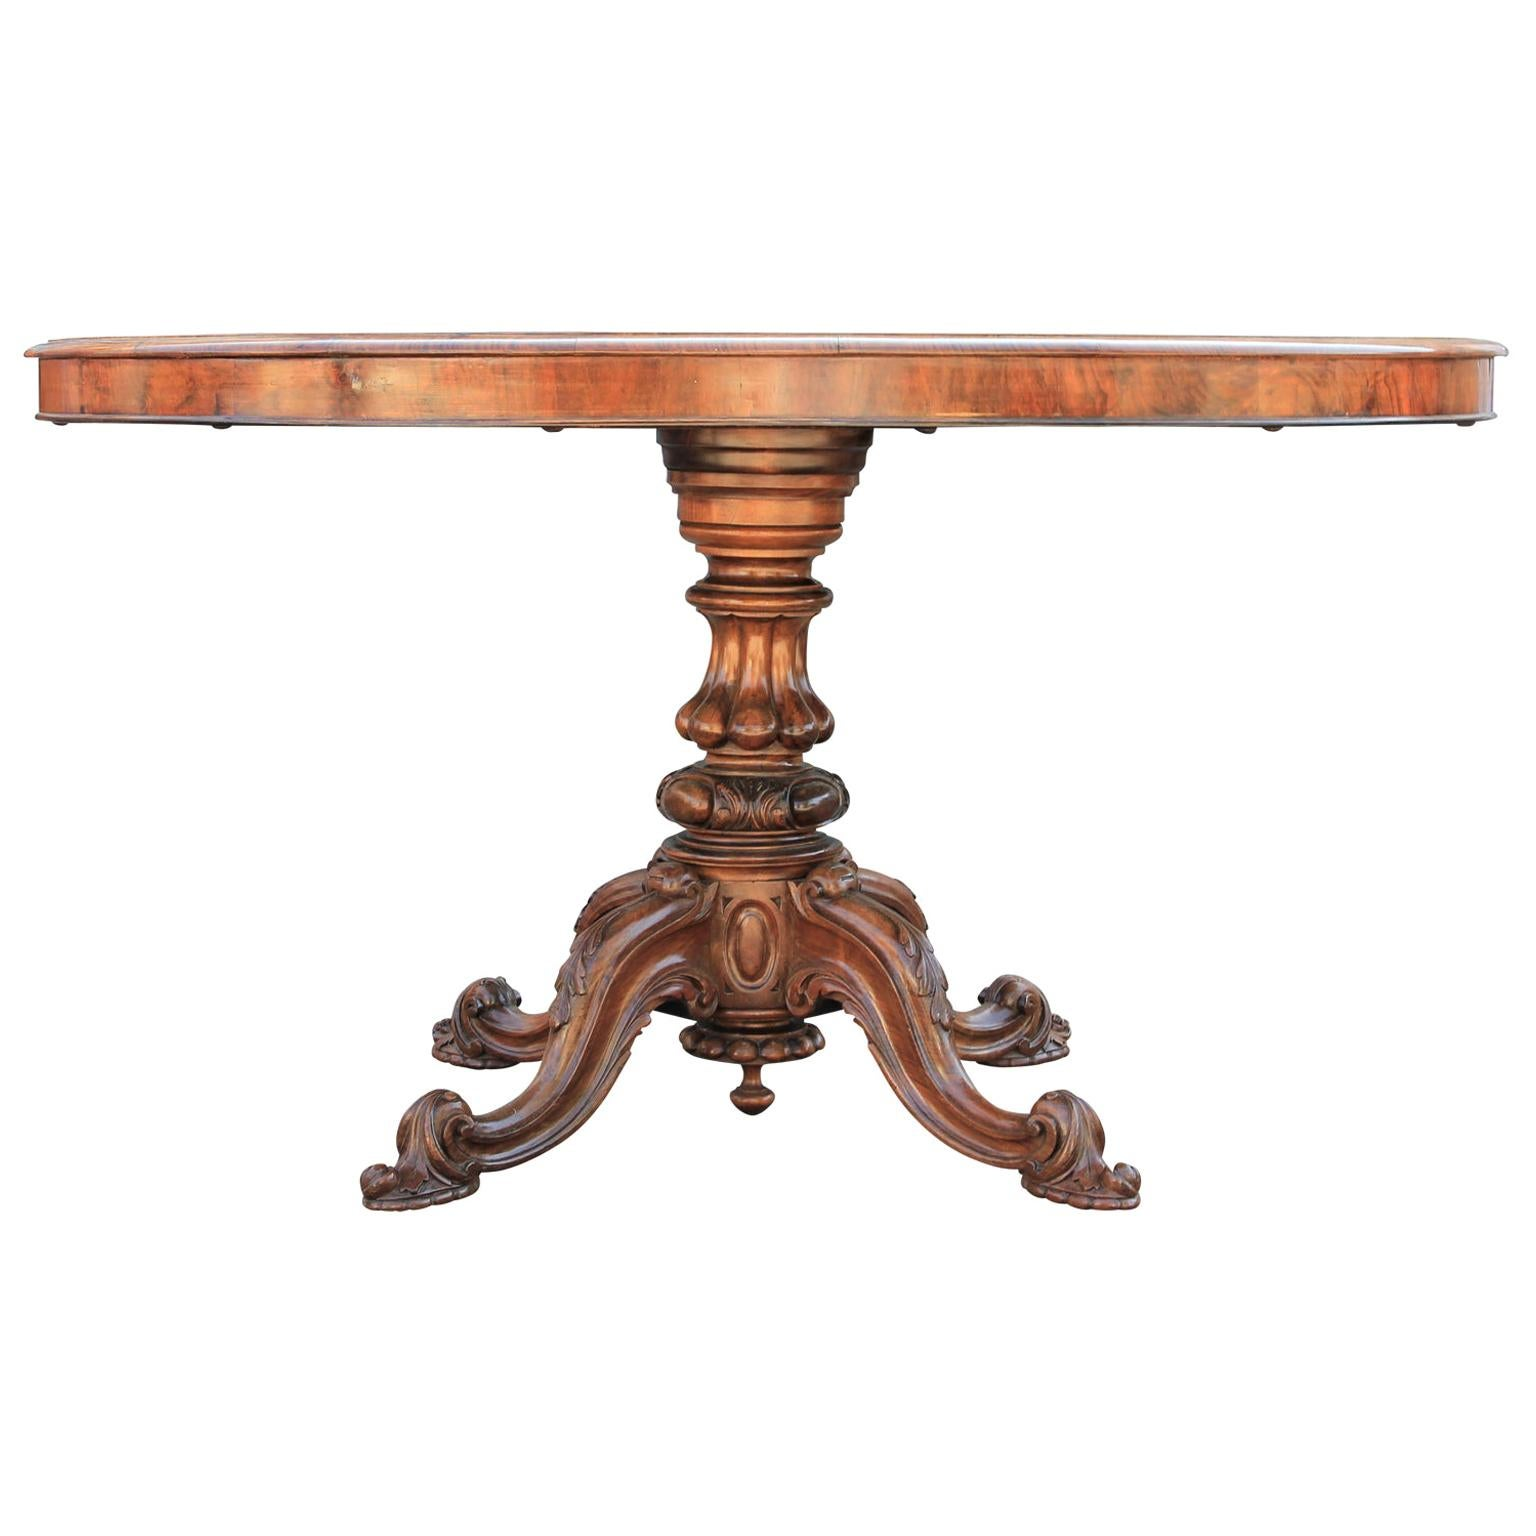 Victorian Oval Walnut and Satinwood Inlaid and Hand-Carved Oval Tilt-Top Table